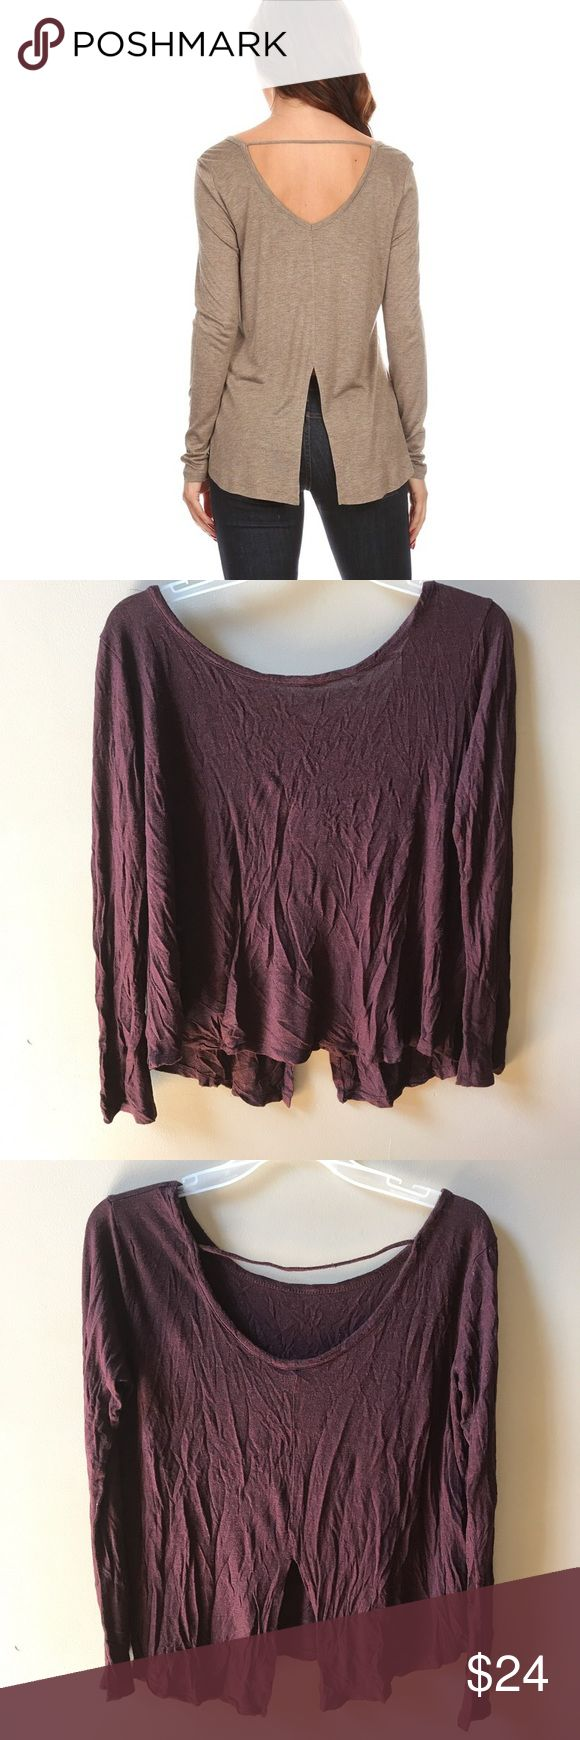 ADDITONAL 50% OFF! Burgundy Cut Out Top Great Condition! Little to no wear Tops